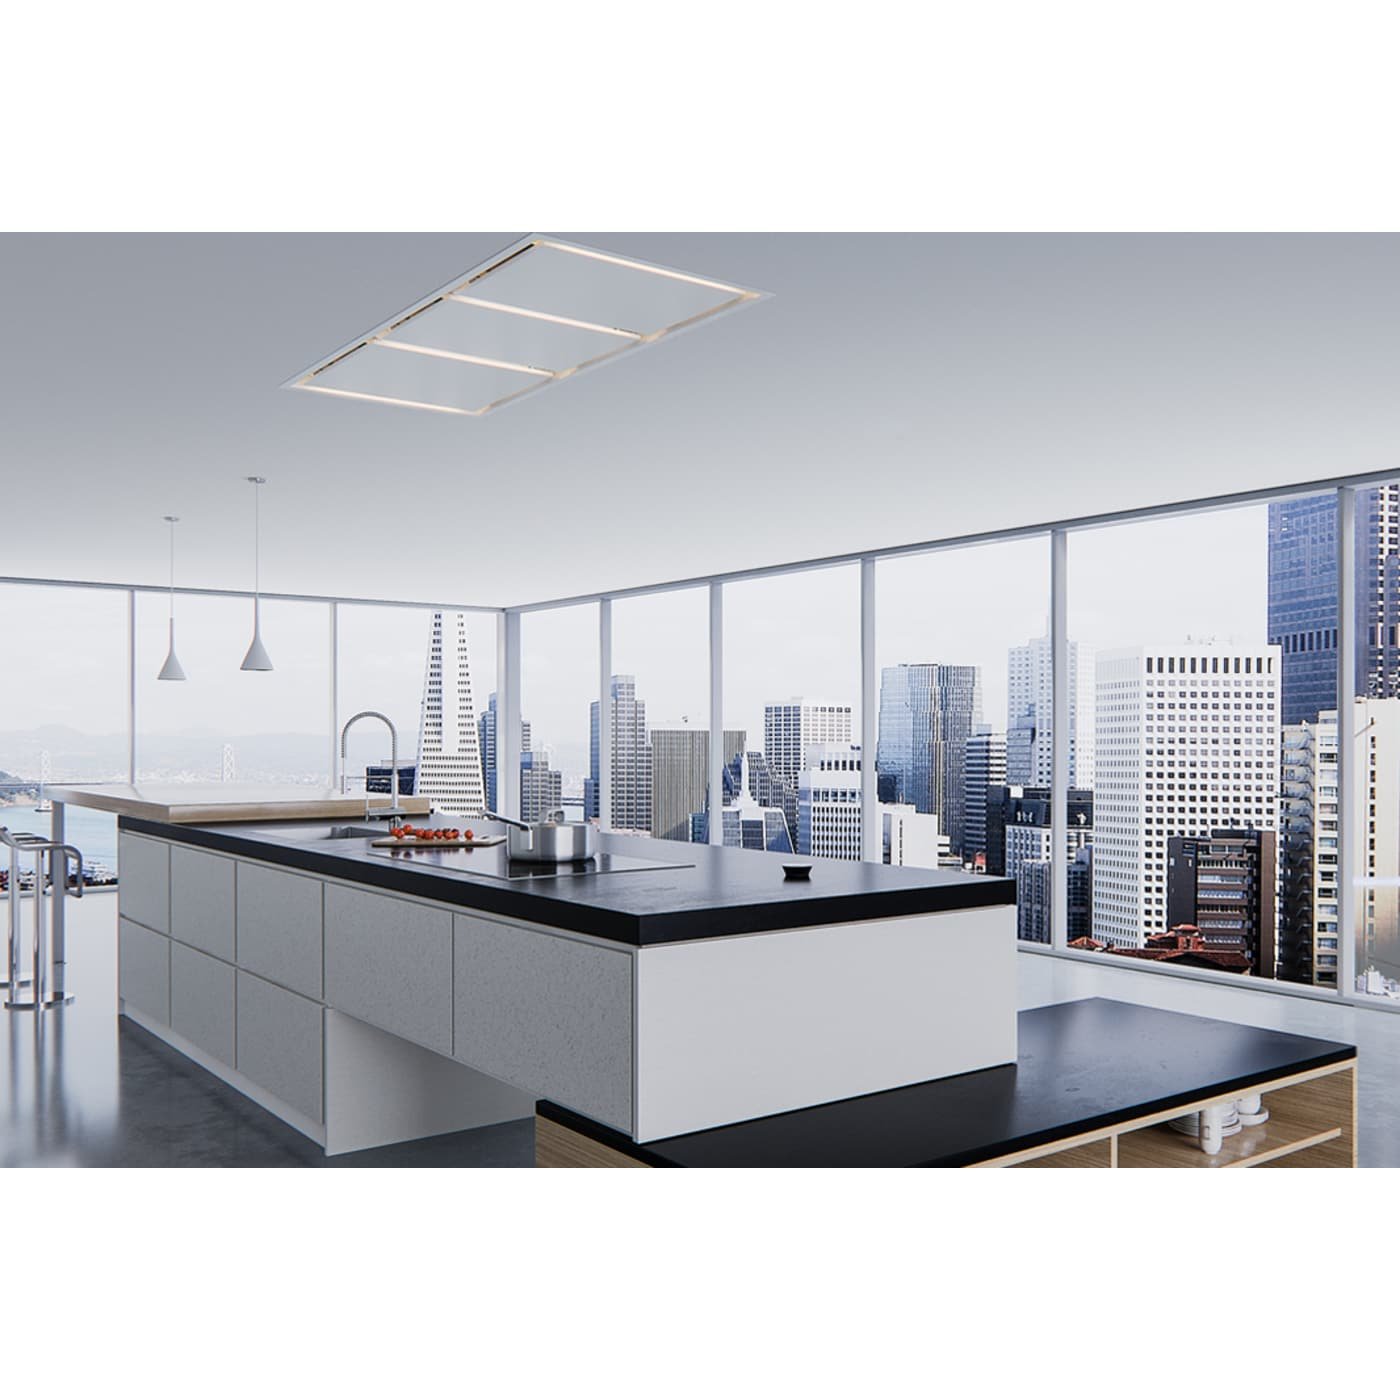 steel control modern images design range kitchen cabinet how for to clear stainless all hood under your and best touch zephyr hoods led light plus with clean furniture glass